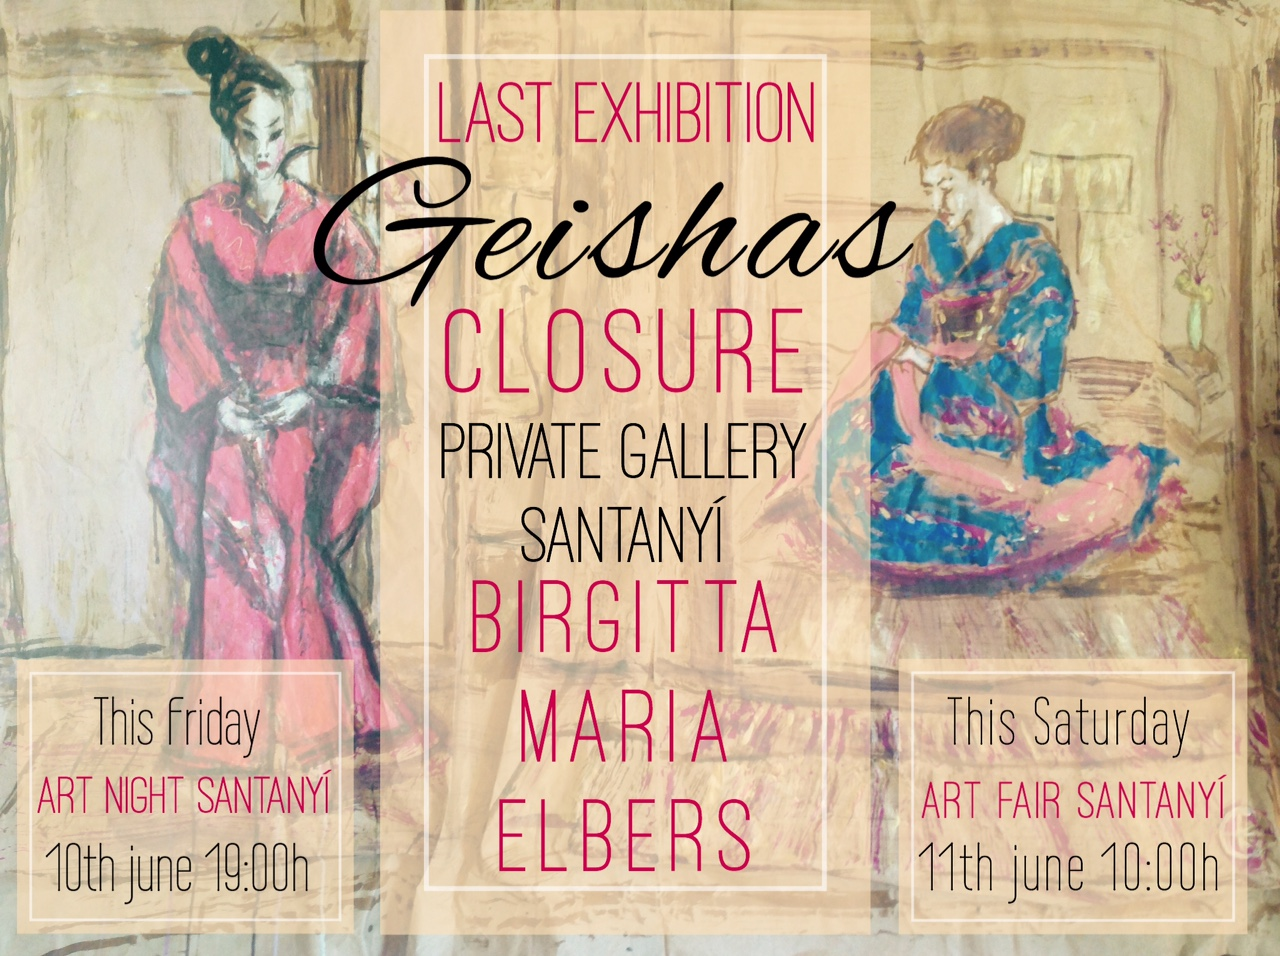 20160611-geishas-closure-exhibition